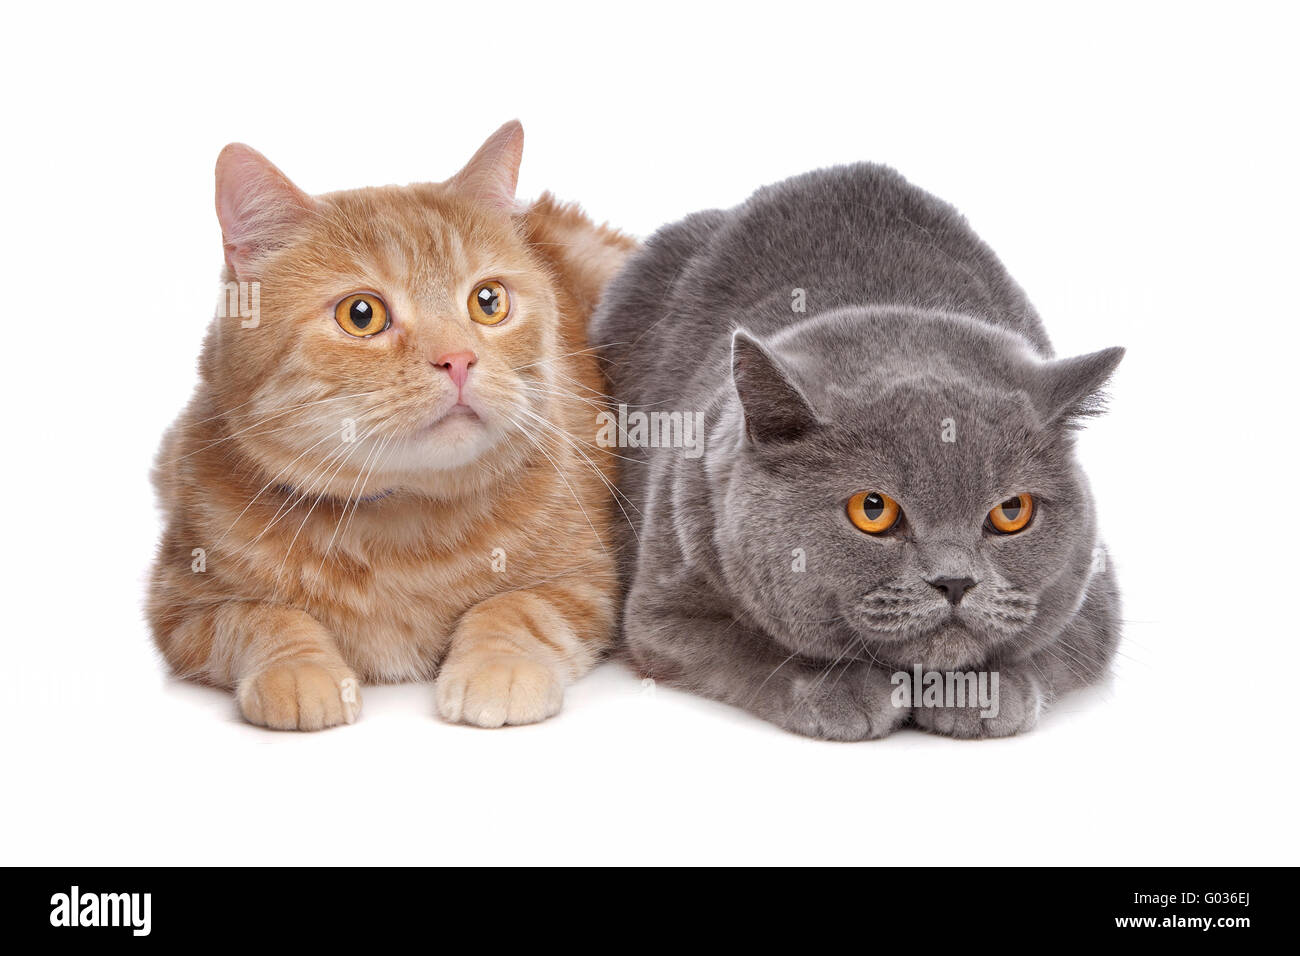 Blue British Shorthair And A Red Maine Coon Cat Stock Photo Alamy